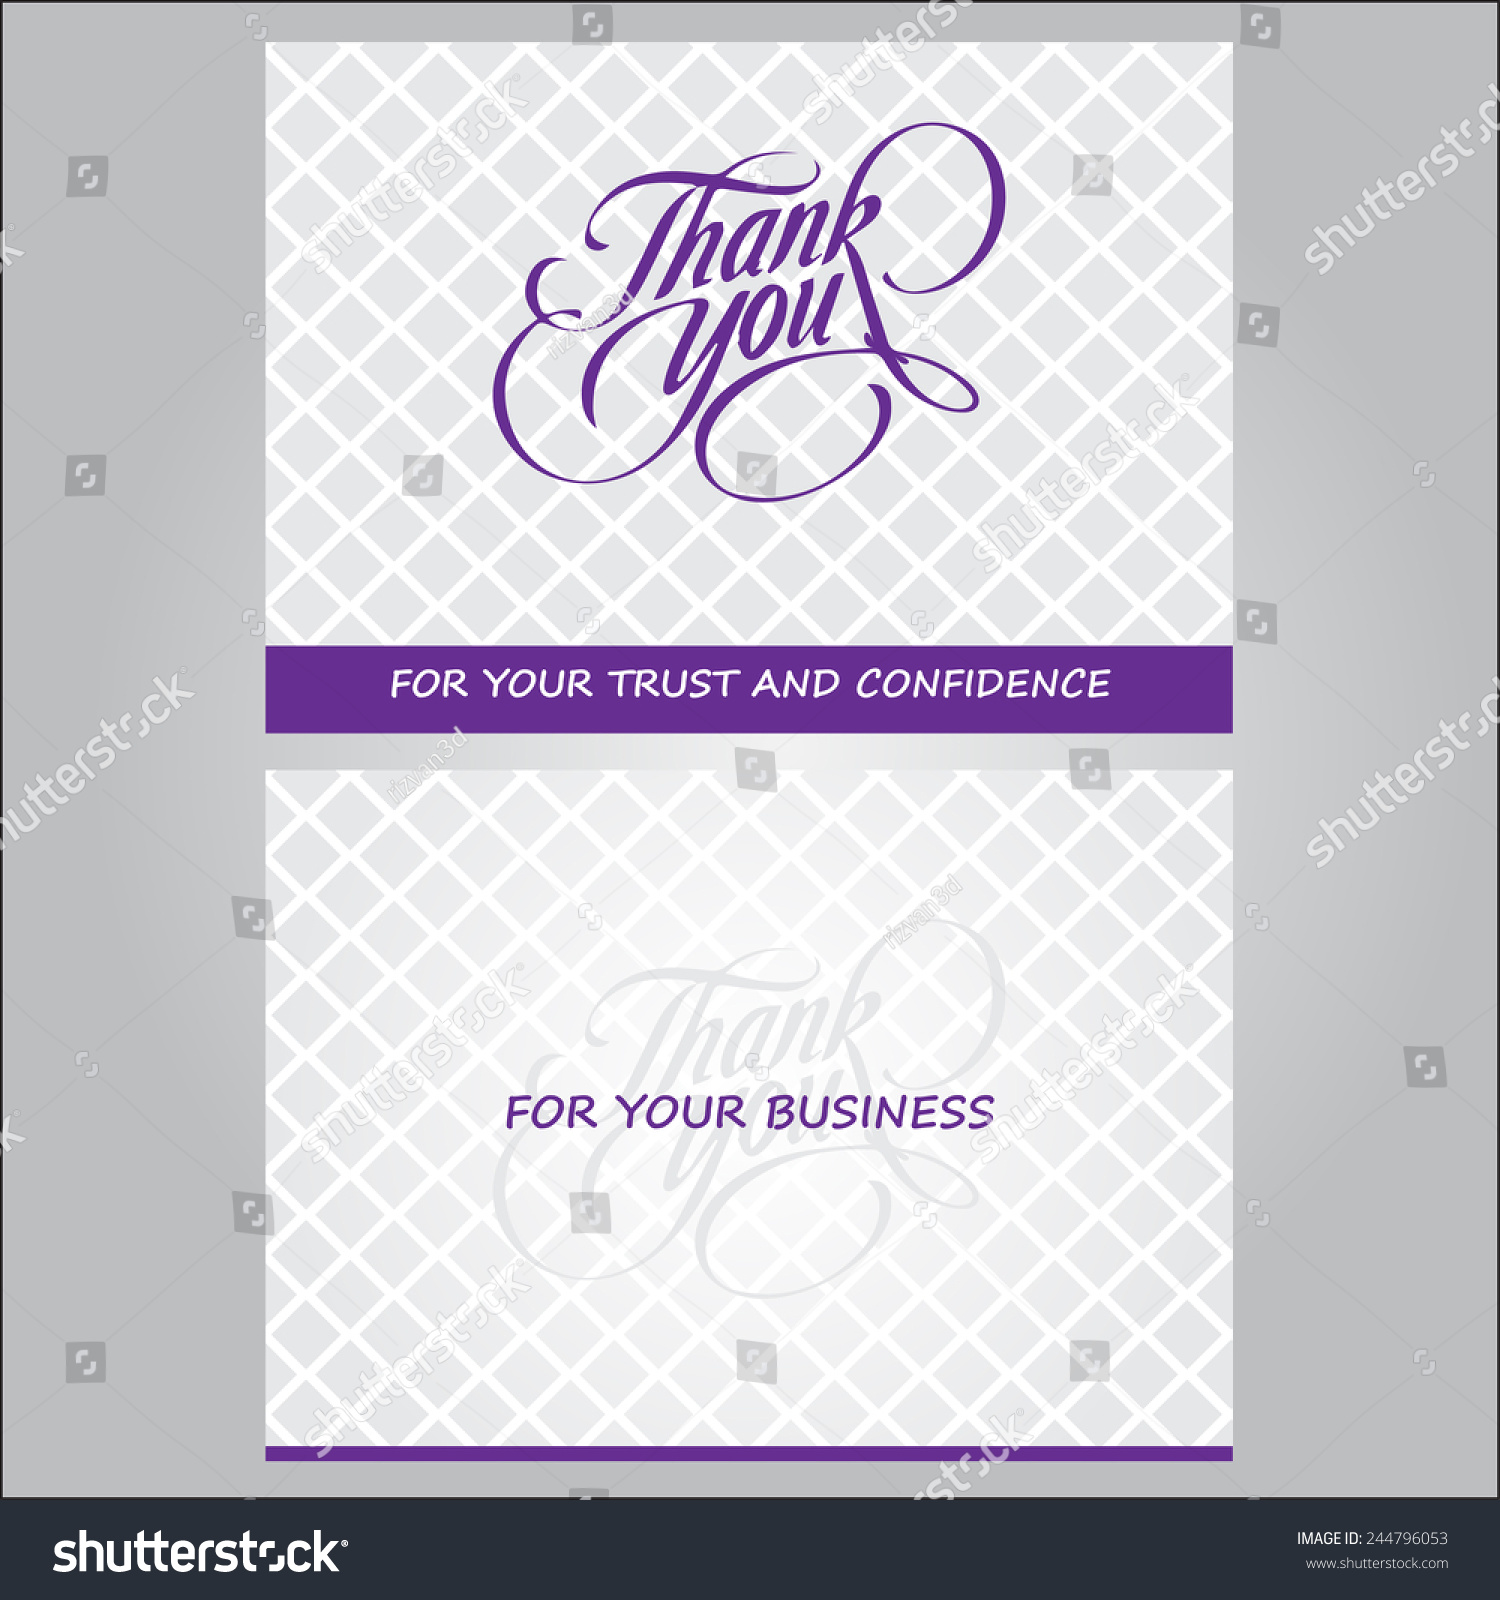 Thank You You Business Card Stock Vector 244796053 - Shutterstock